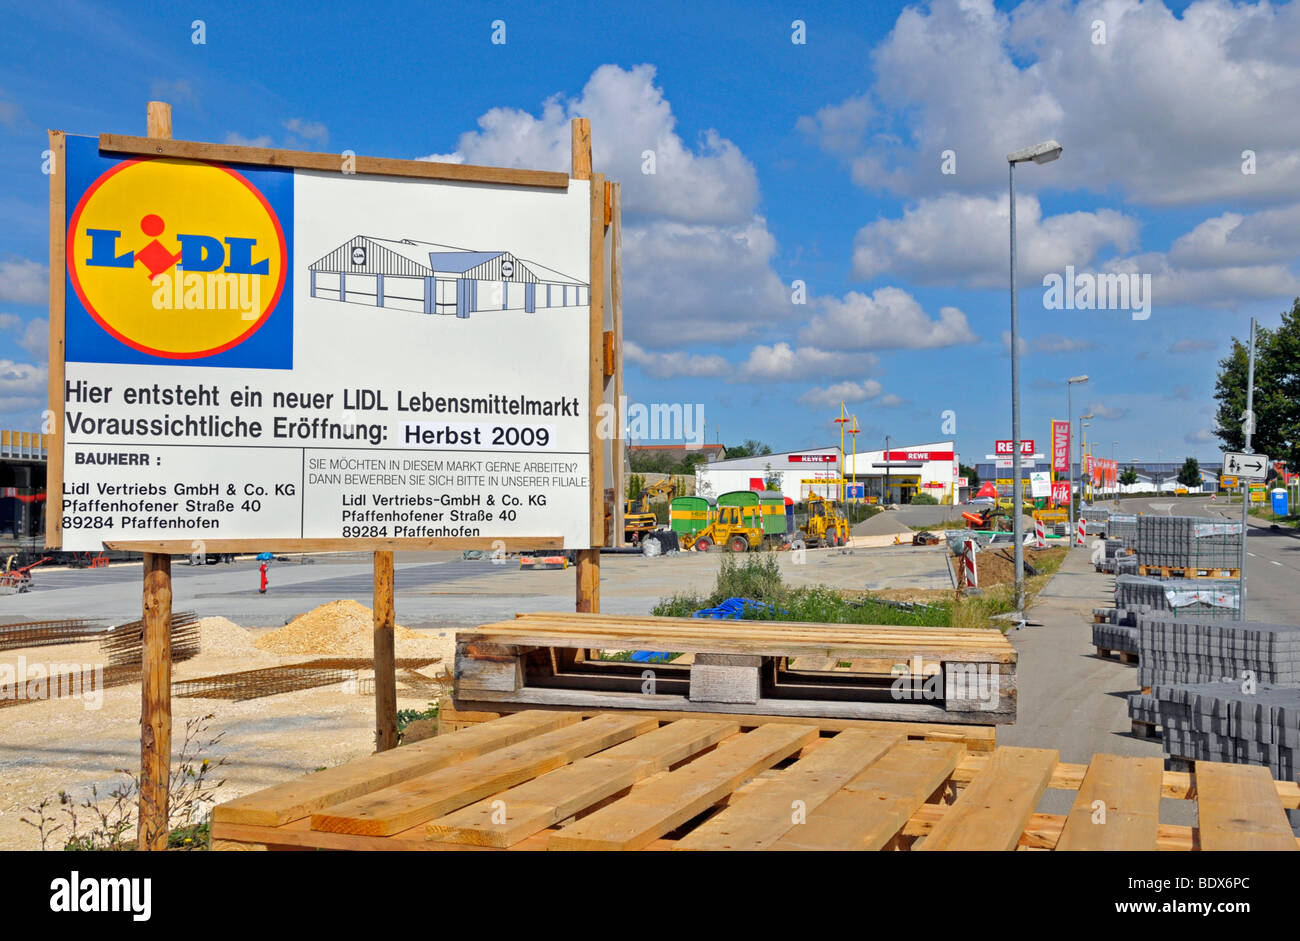 lidl discount stores stock photos lidl discount stores stock images alamy - Lidl Online Bewerbung